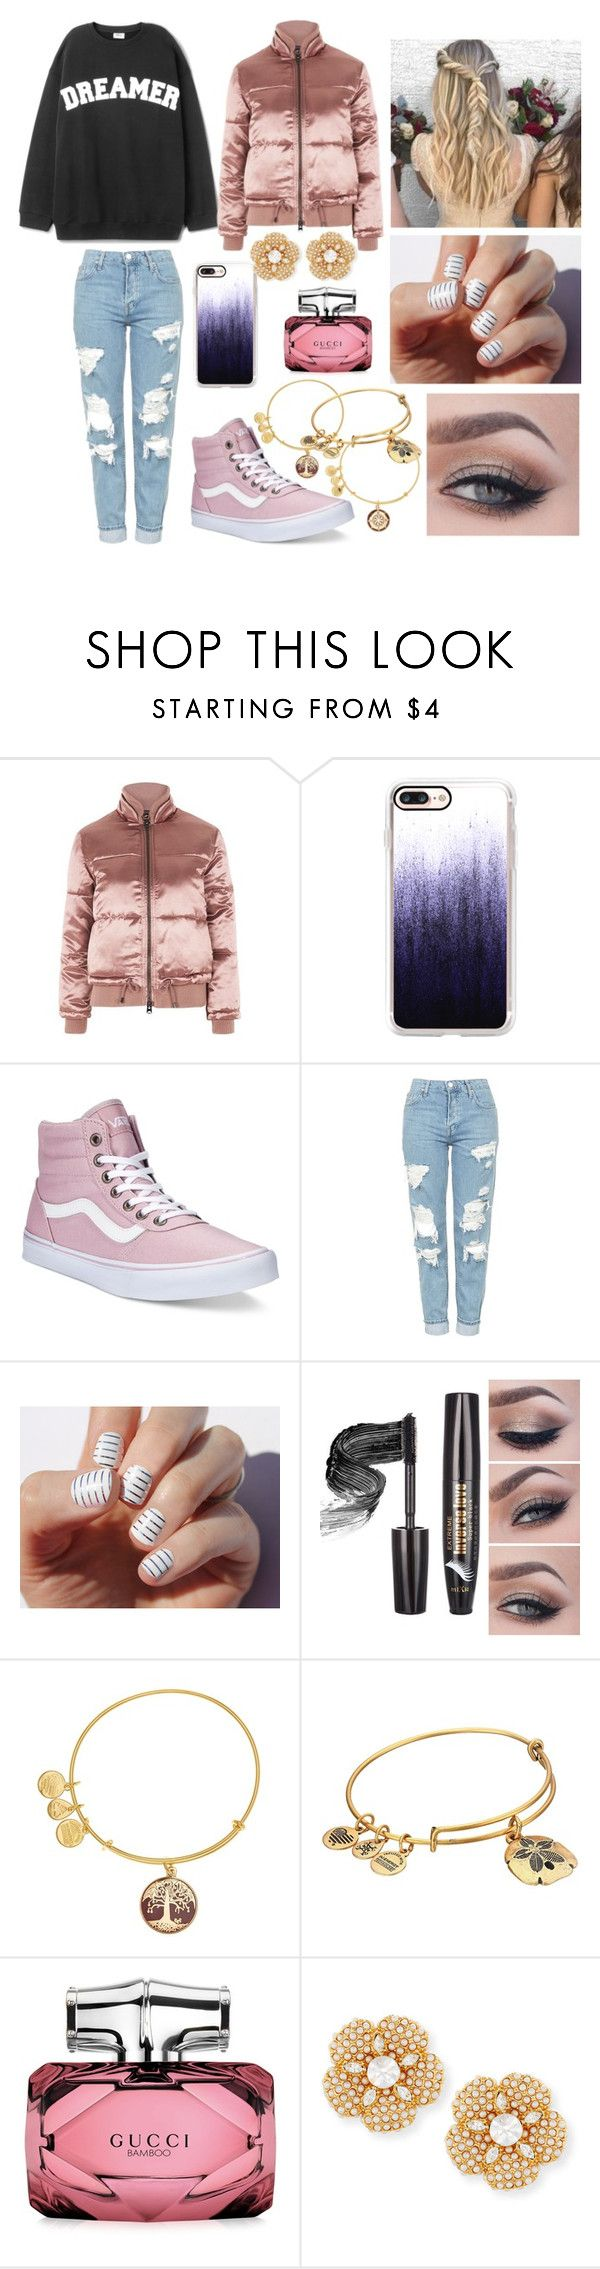 """""""Winter puffer jacket- outfit 3"""" by shayla903 ❤ liked on Polyvore featuring Topshop, Casetify, Vans, SoGloss, Alex and Ani, Gucci and Kate Spade"""